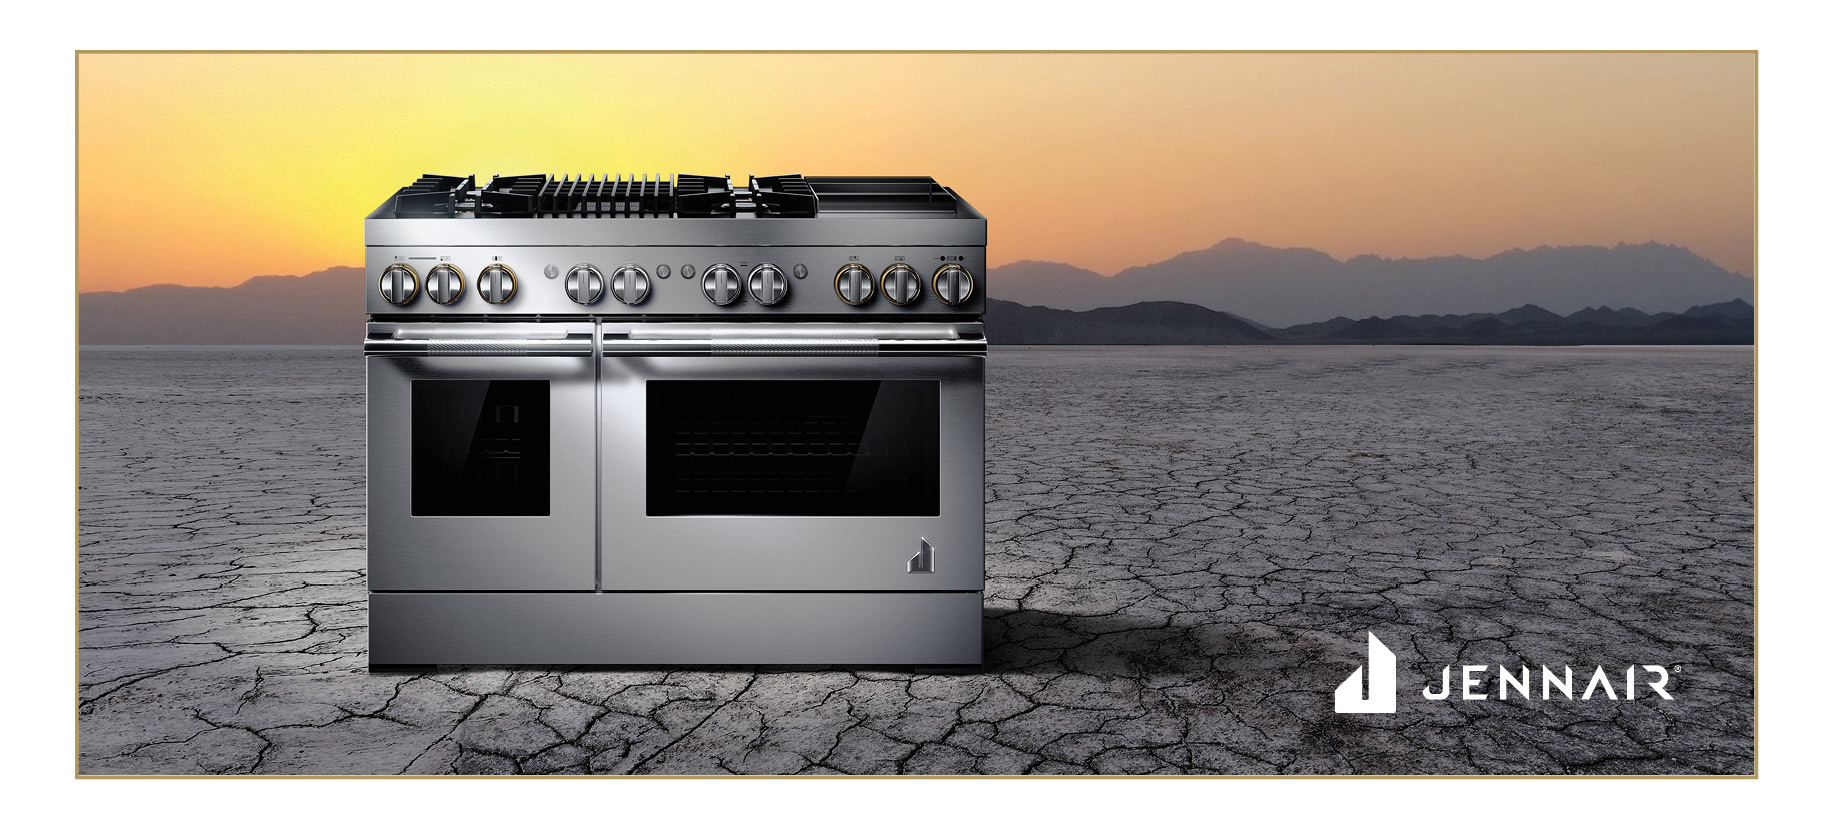 JennAir Rise Dual-Fuel Professional-Style Range in silver with brass accents. Range is in the desert with a beautiful sunset behind.